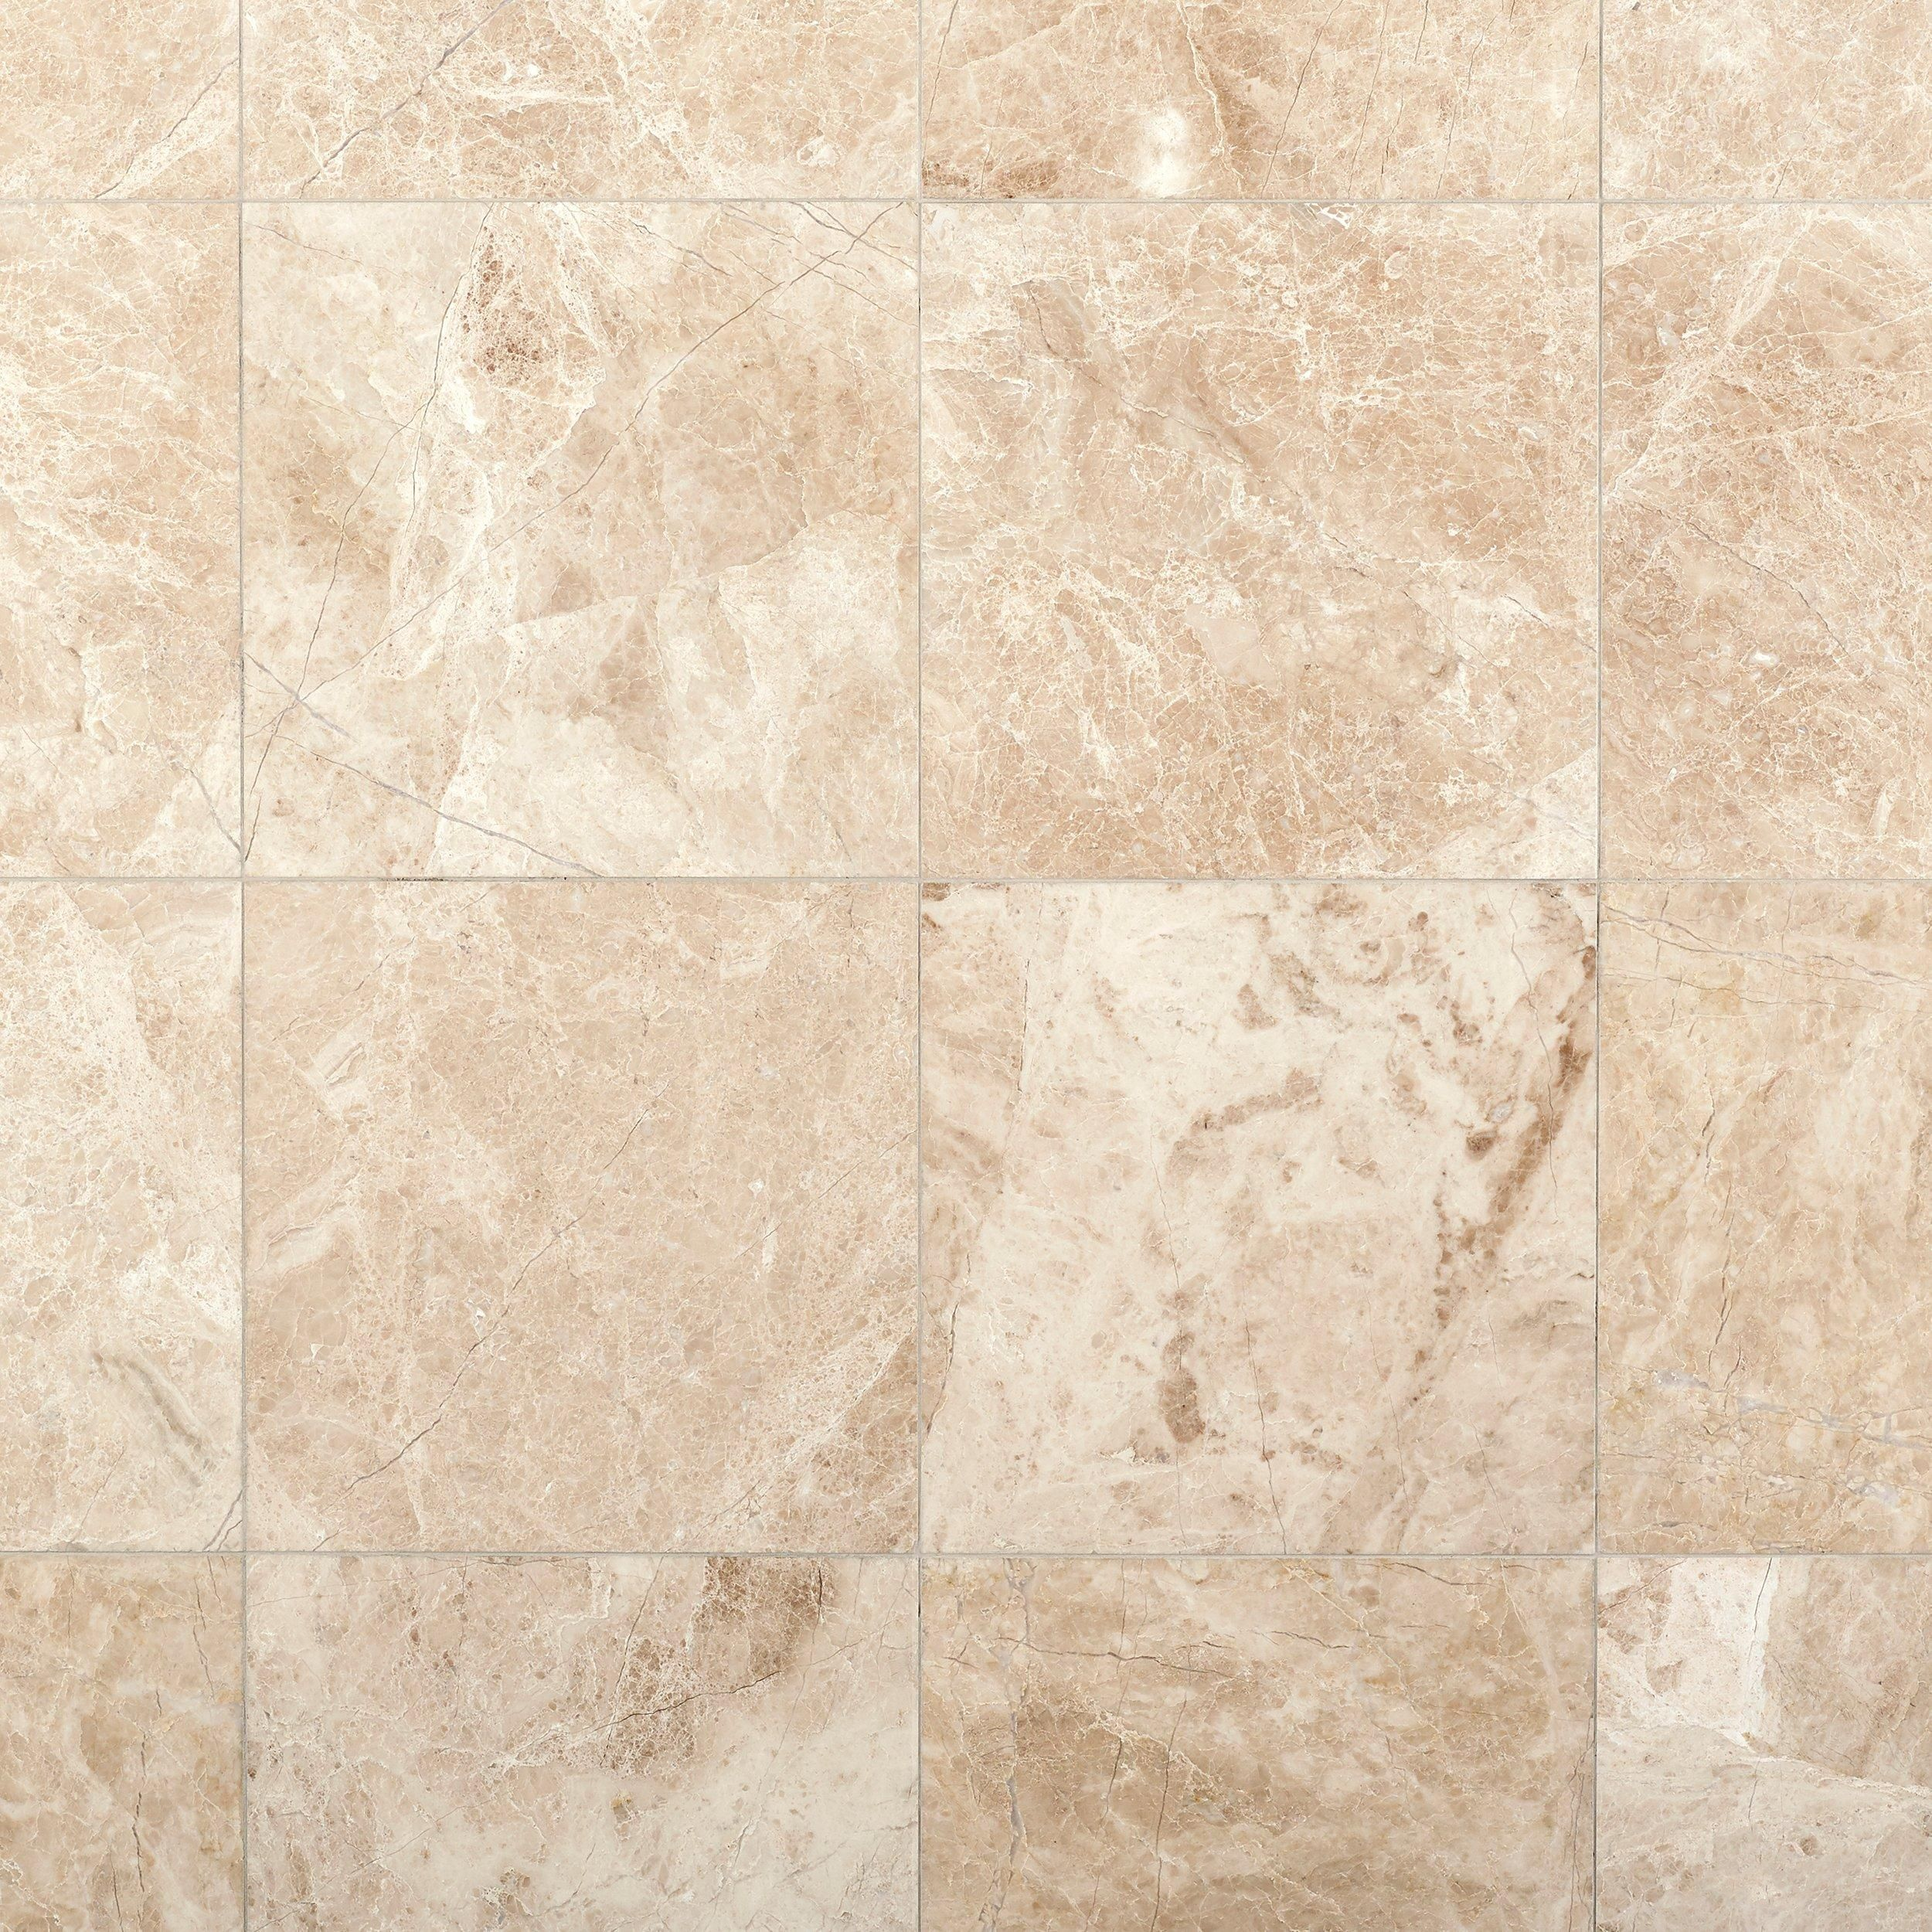 Avillano Cappuccino Polished Marble Tile 12 X 12 Beige 0 375 Thick Floor Decor In 2020 Polished Marble Tiles Marble Tile Hexagon Marble Tile